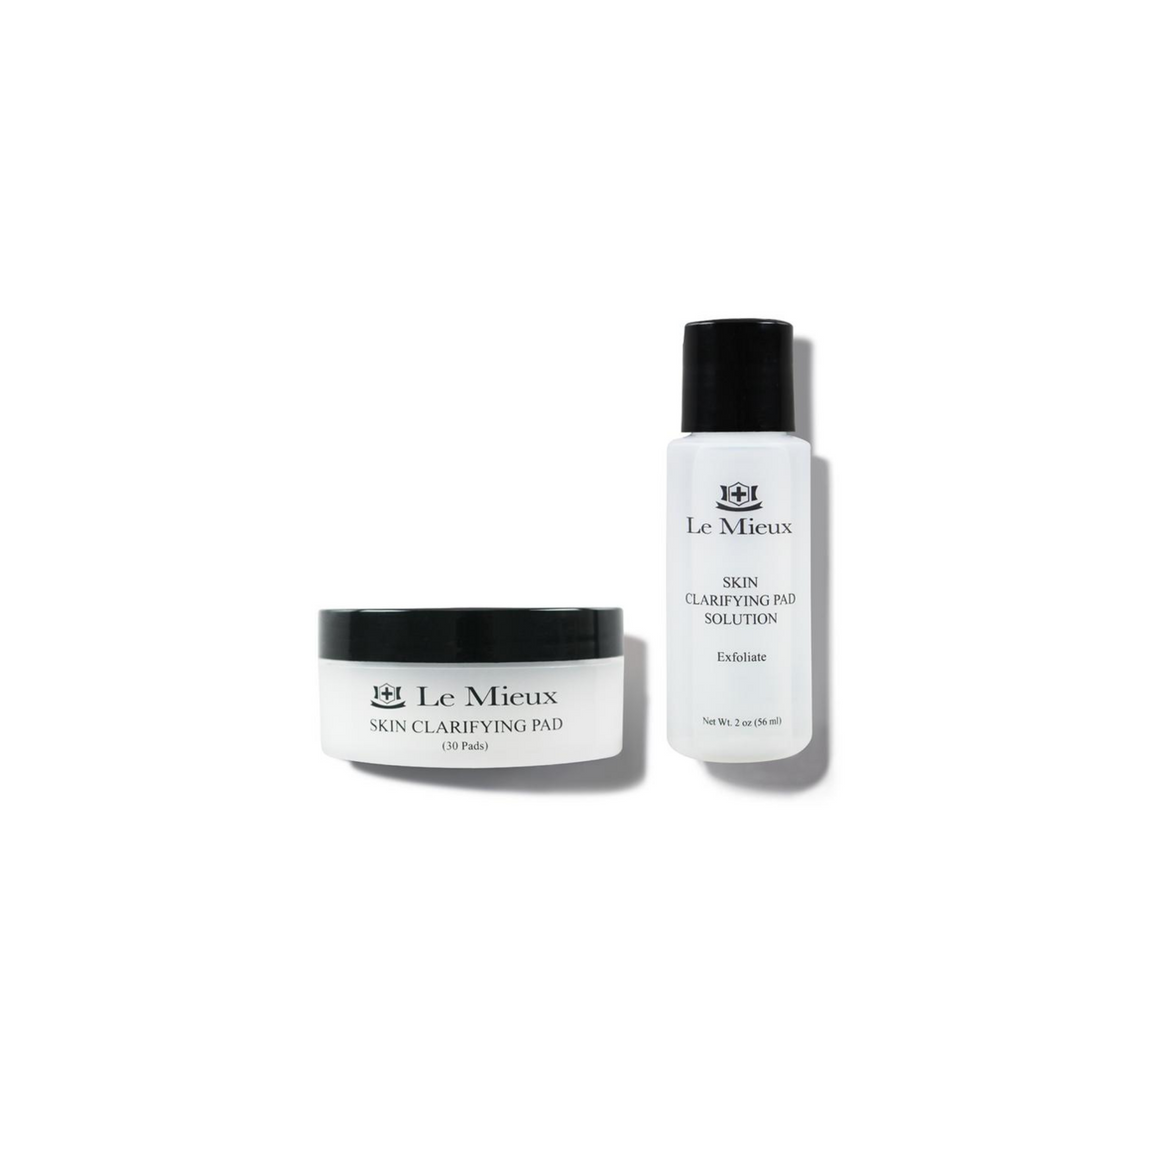 Le Mieux Skin Clarifying Pads  (Acne prone skin treatment)